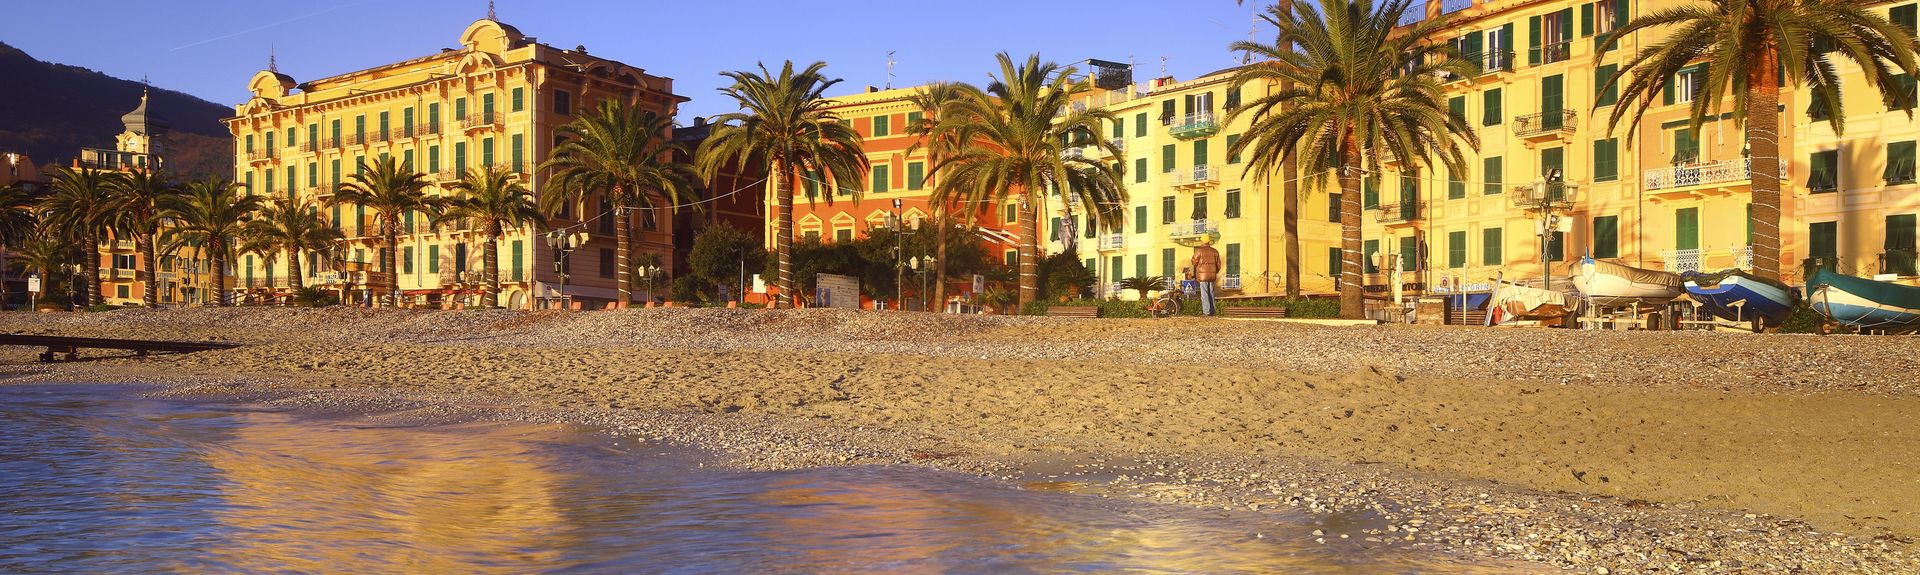 Santa Margherita Ligure, Liguria, Italia